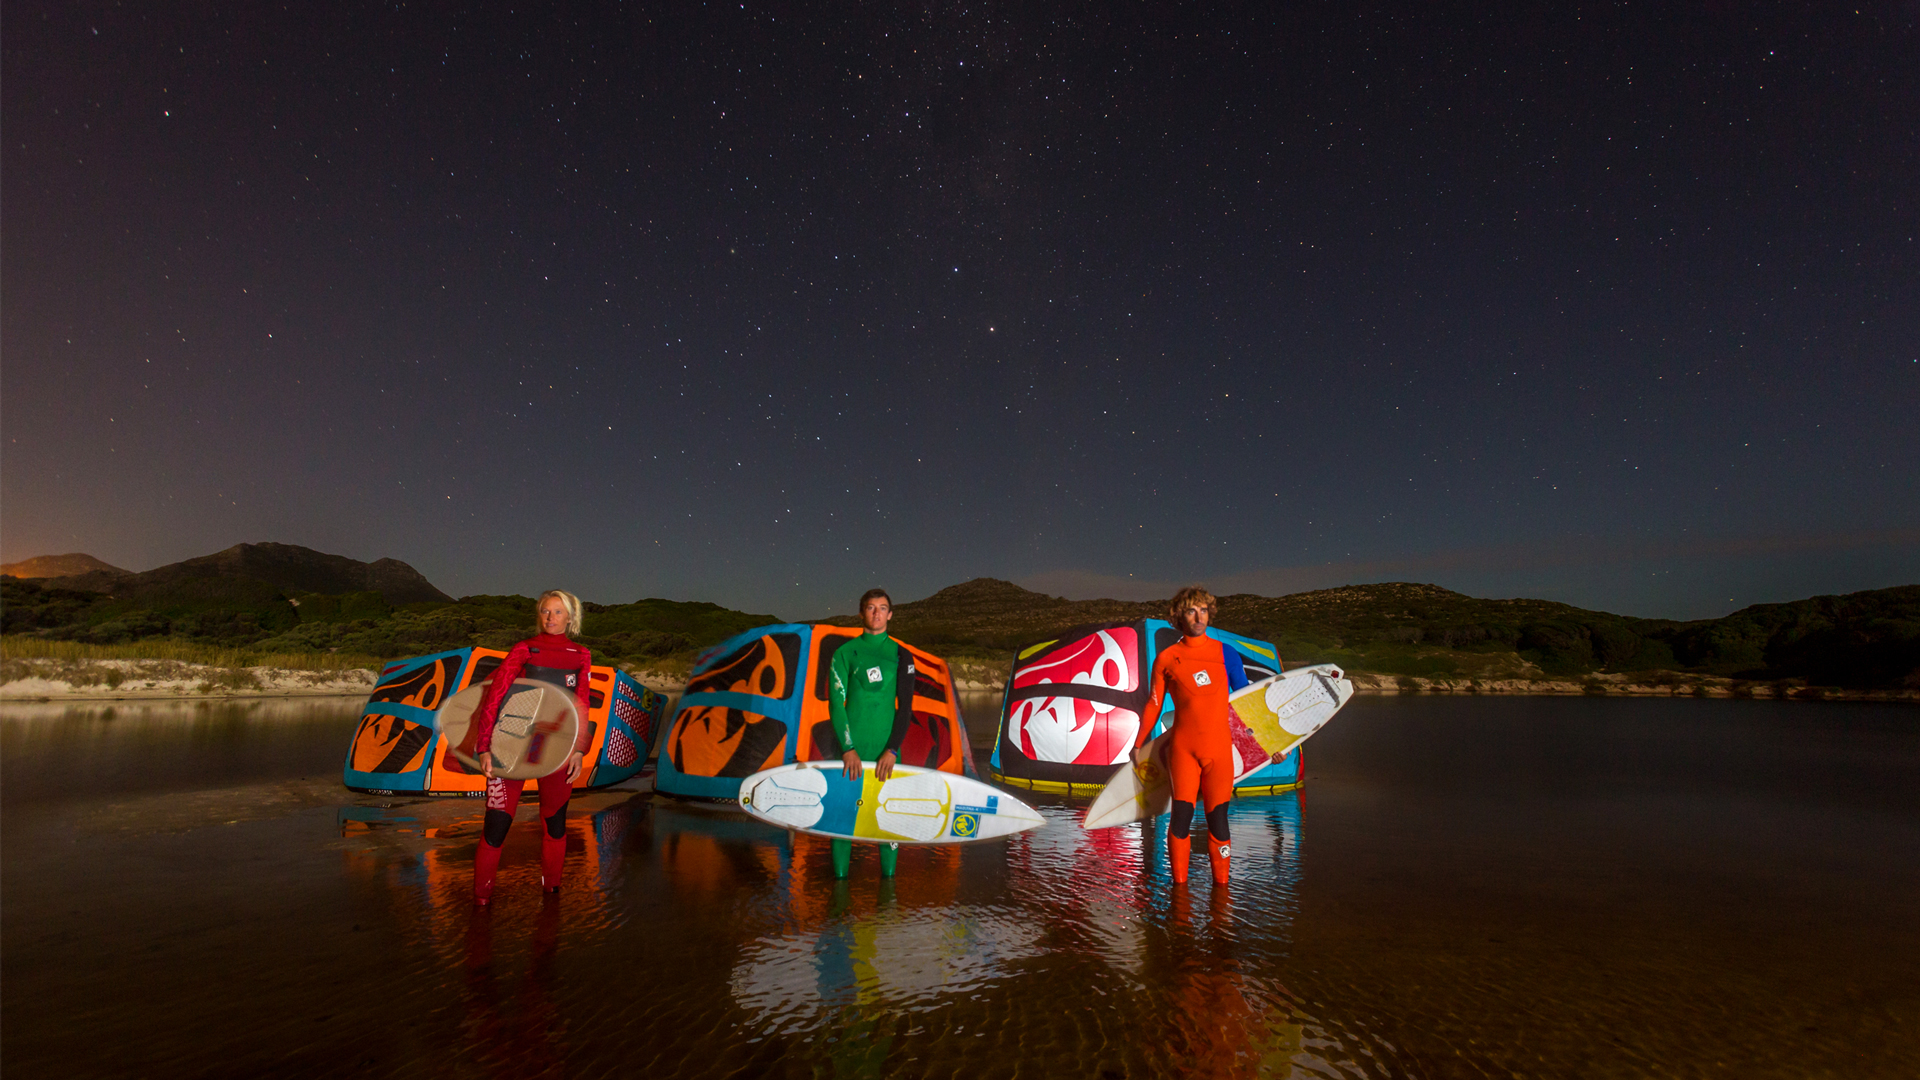 kitesurf wallpaper image - RRD wave trio looking at the stars with their 2015 Religion kites - Abel Lago and Kari Schibevaag - kitesurfing - in resolution: High Definition - HD 16:9 1920 X 1080